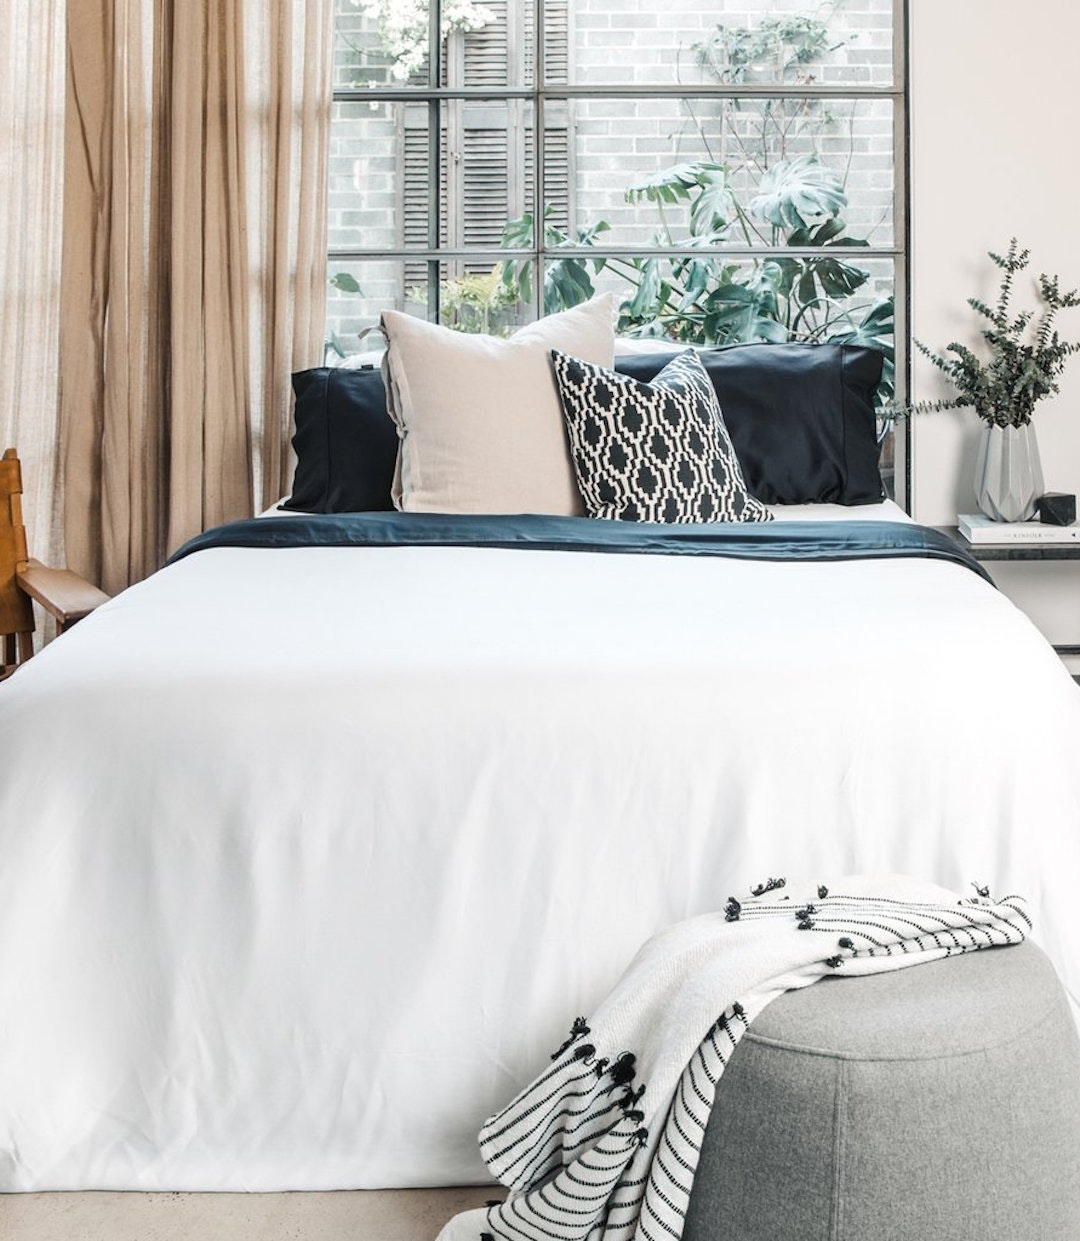 A plush and inviting blue and white bed.